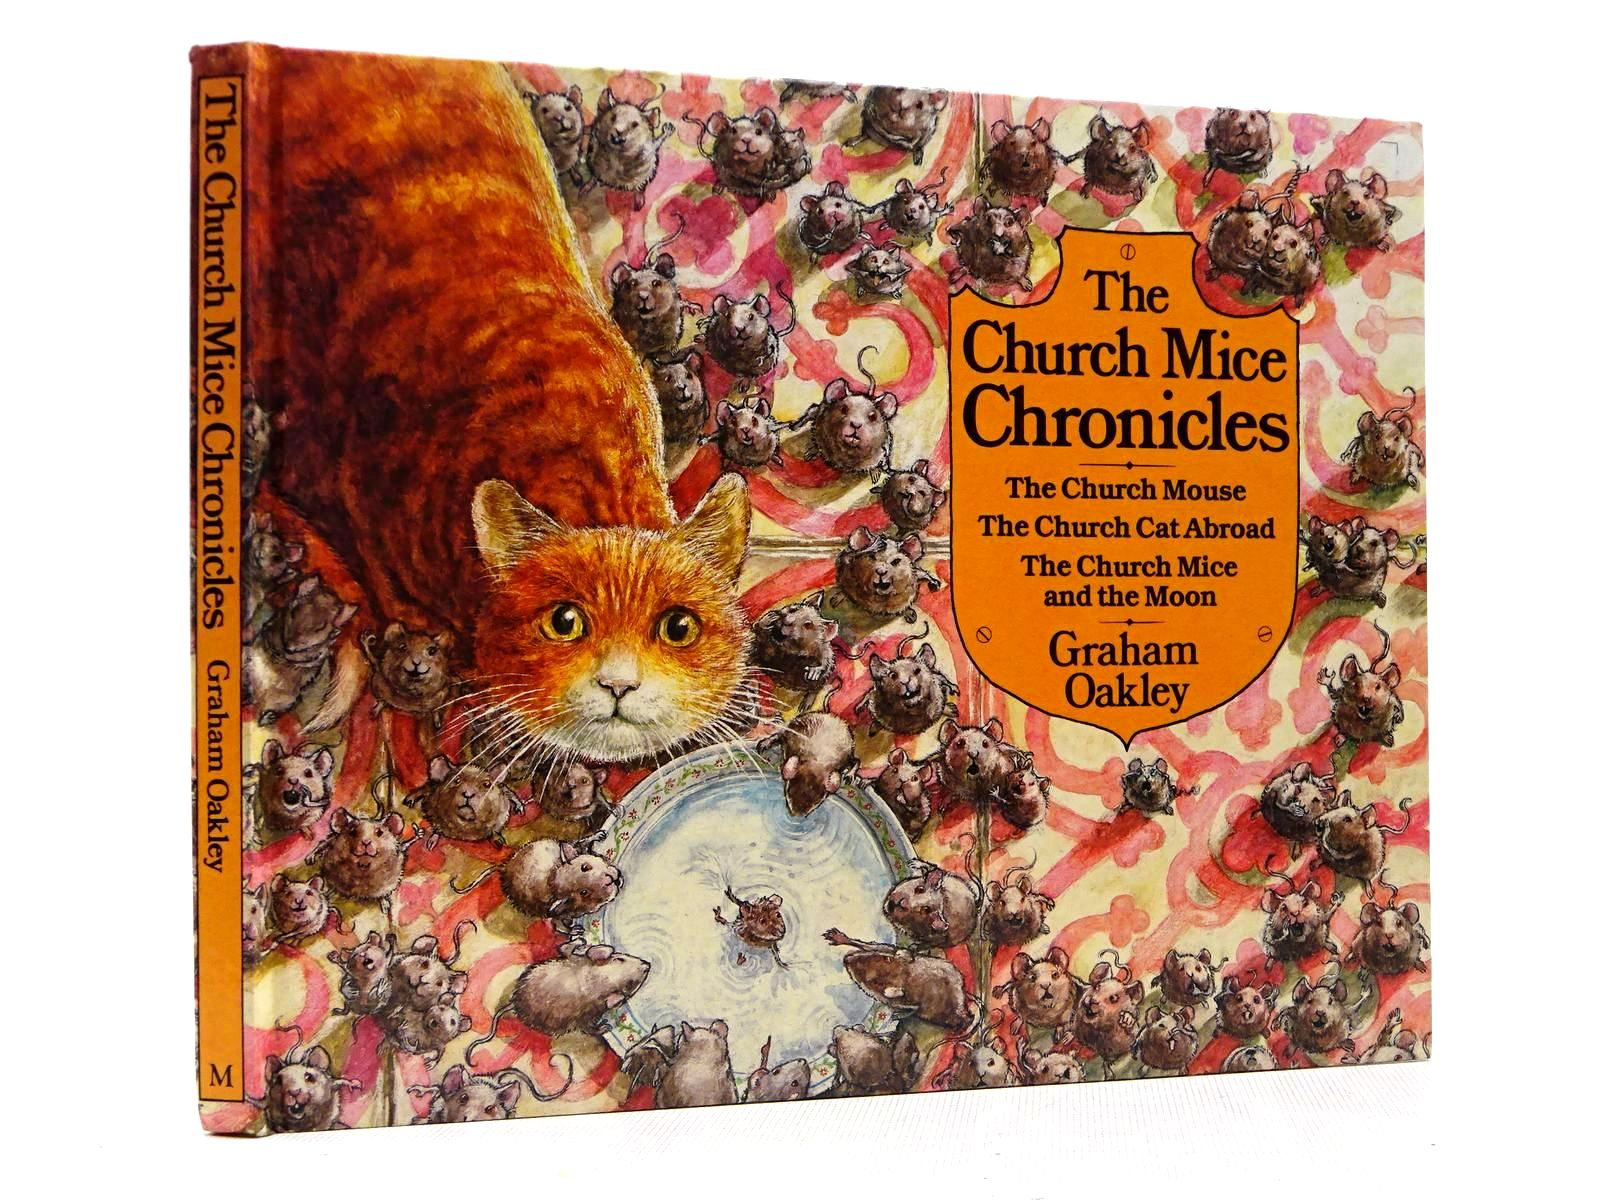 Photo of THE CHURCH MICE CHRONICLES written by Oakley, Graham illustrated by Oakley, Graham published by Macmillan Children's Books (STOCK CODE: 2129170)  for sale by Stella & Rose's Books